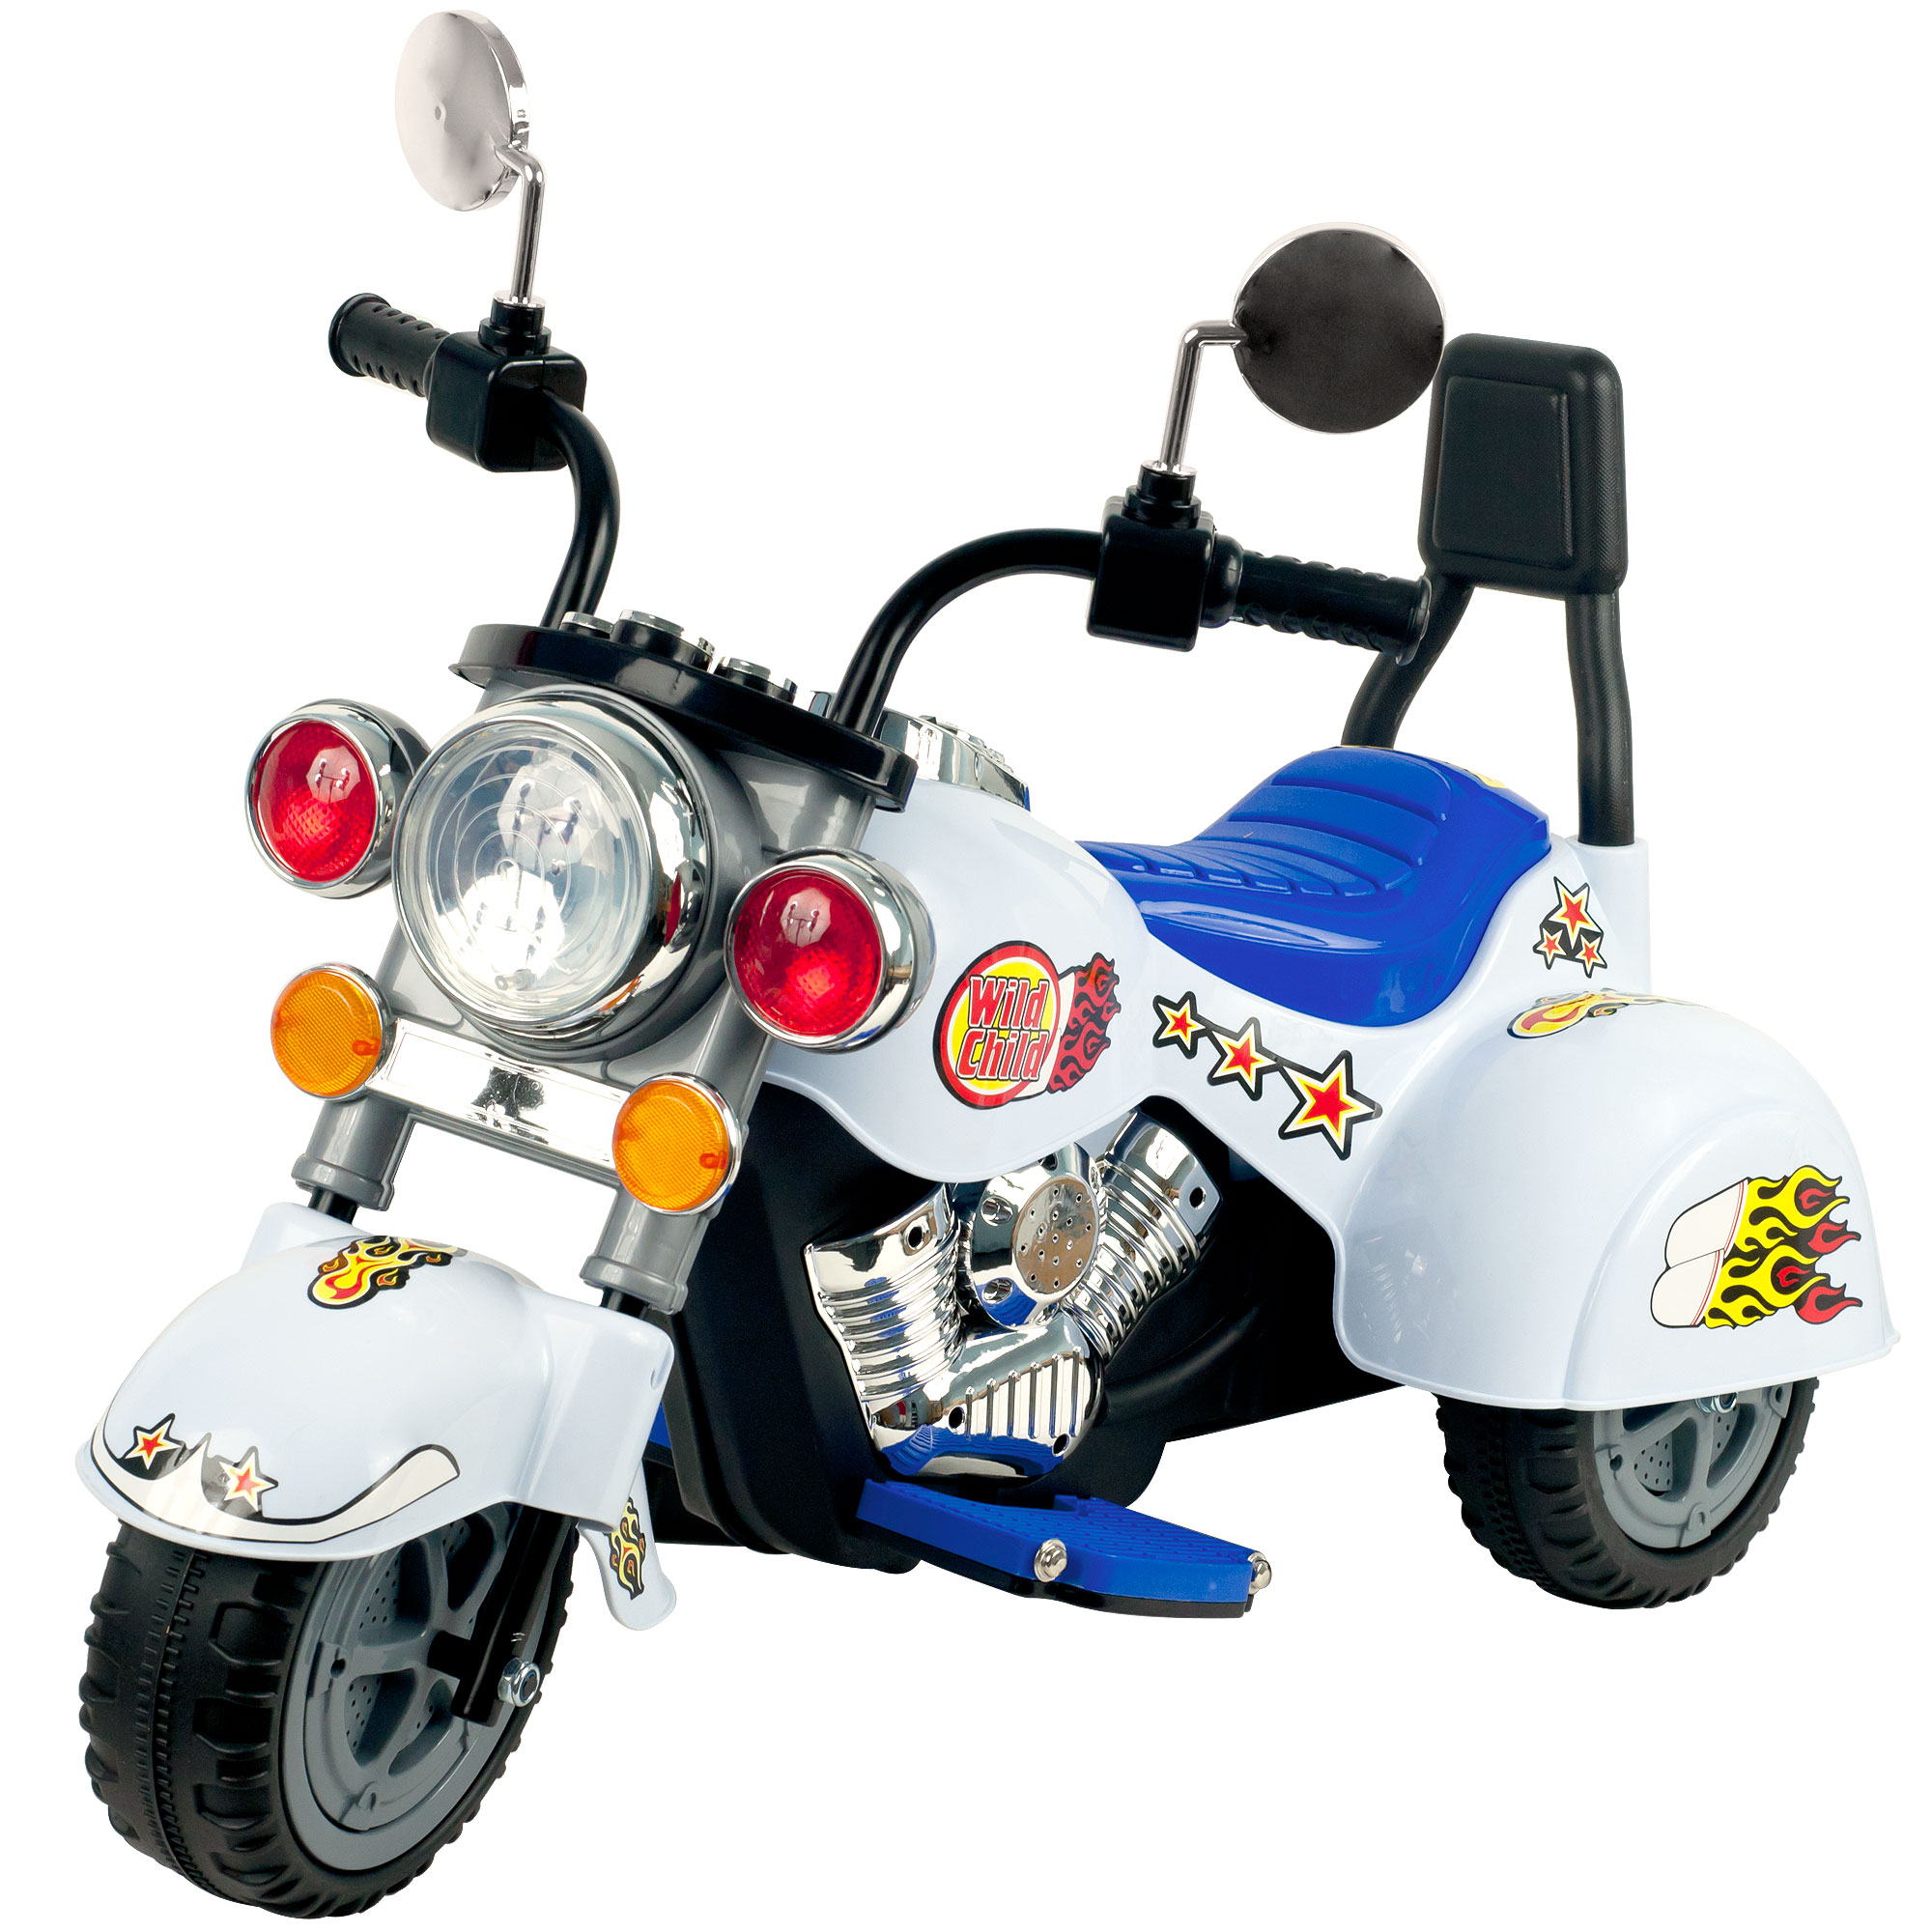 Ride on Toy, 3 Wheel Trike Chopper Motorcycle for Kids by Hey! Play! Battery Powered Ride... by Trademark Global LLC